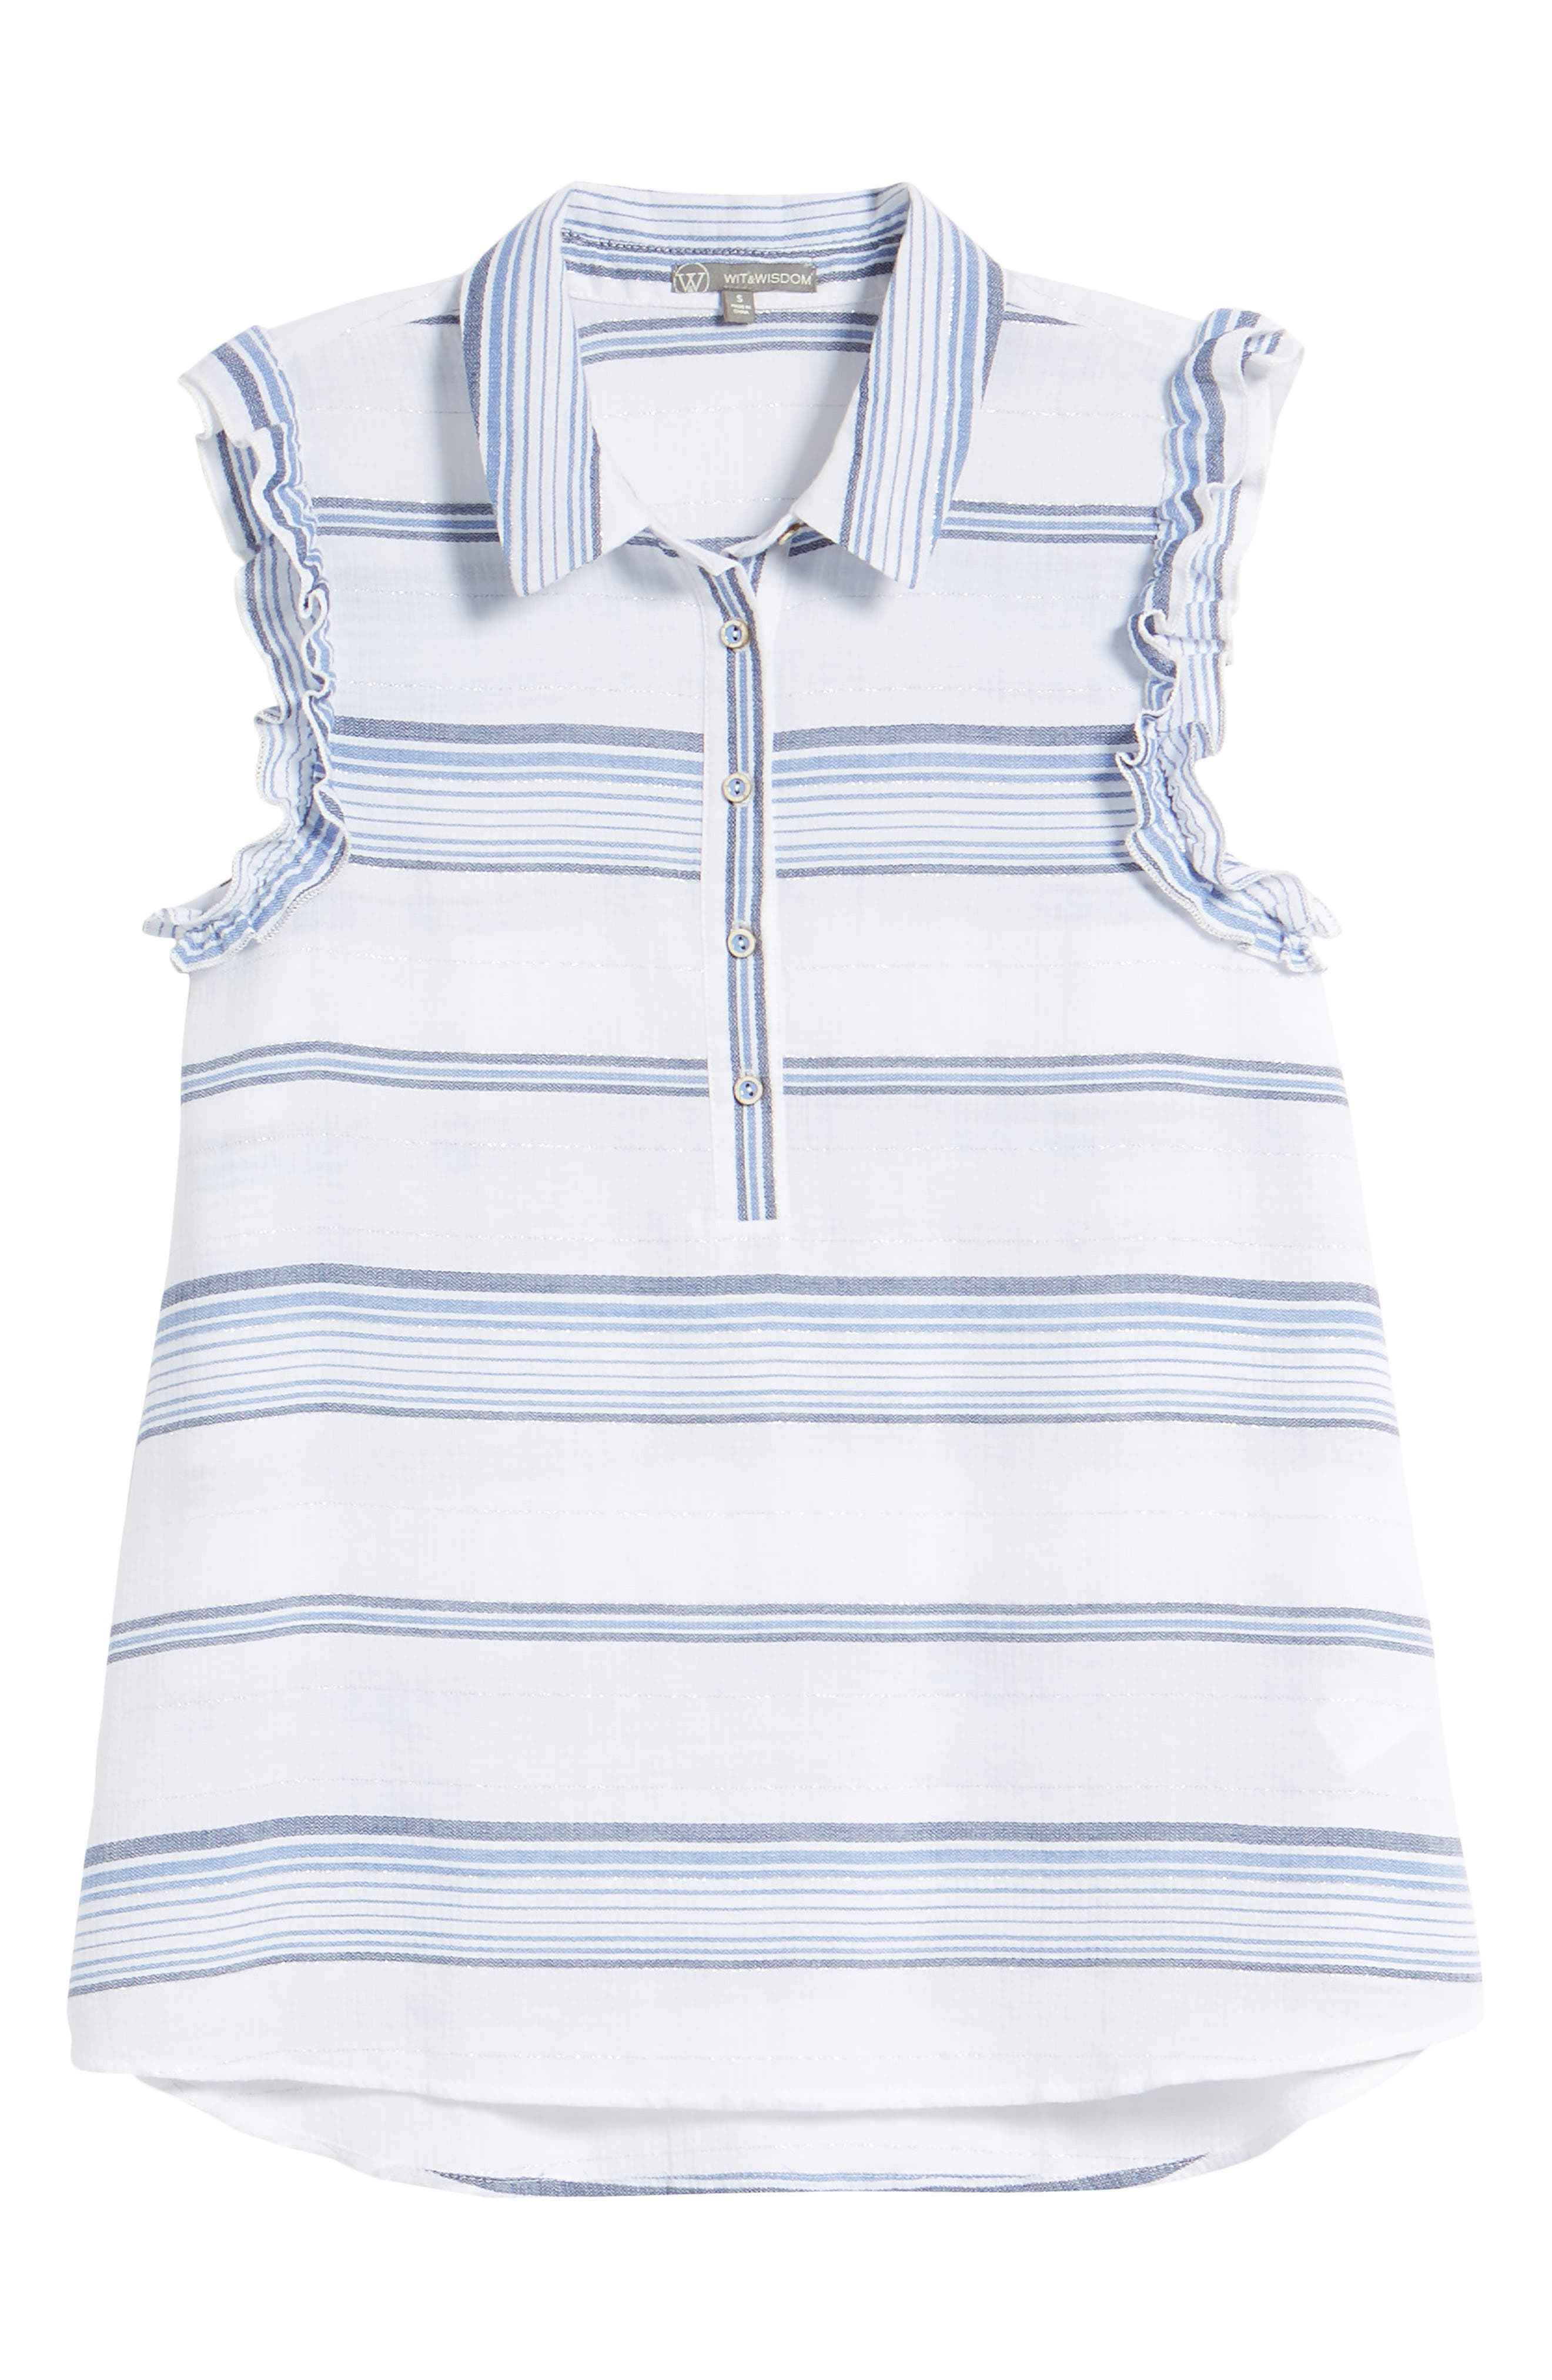 Ruffled Sleeve Striped Top,                             Alternate thumbnail 7, color,                             450